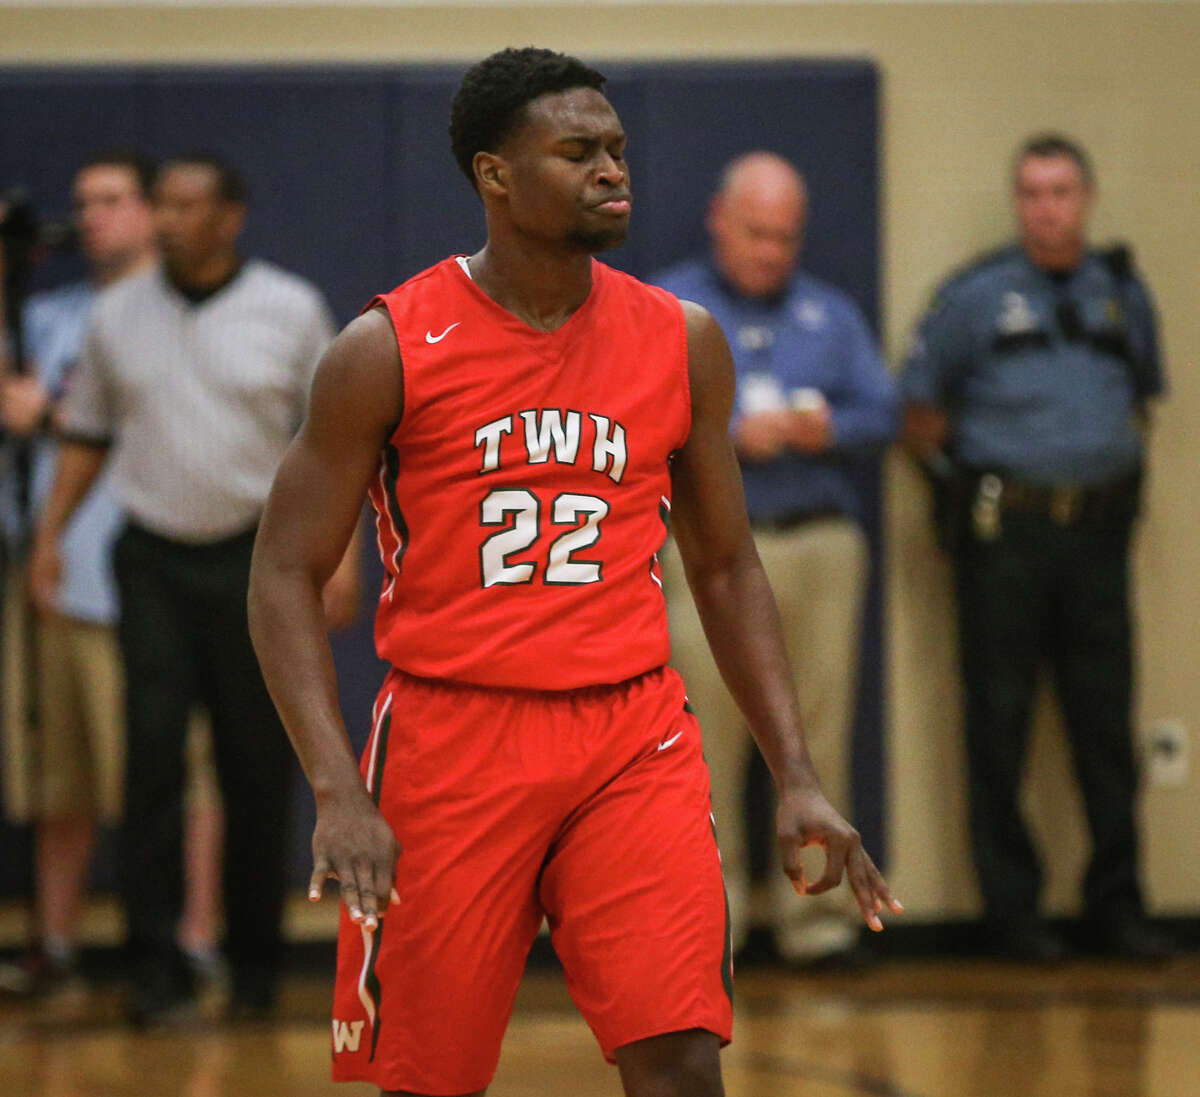 The Woodlands' Romello Wilbert (22) reacts after scoring a basket at the halftime buzzer during the varsity boys basketball game on Tuesday, Jan. 24, 2017, at College Park High School. (Michael Minasi / Chronicle)